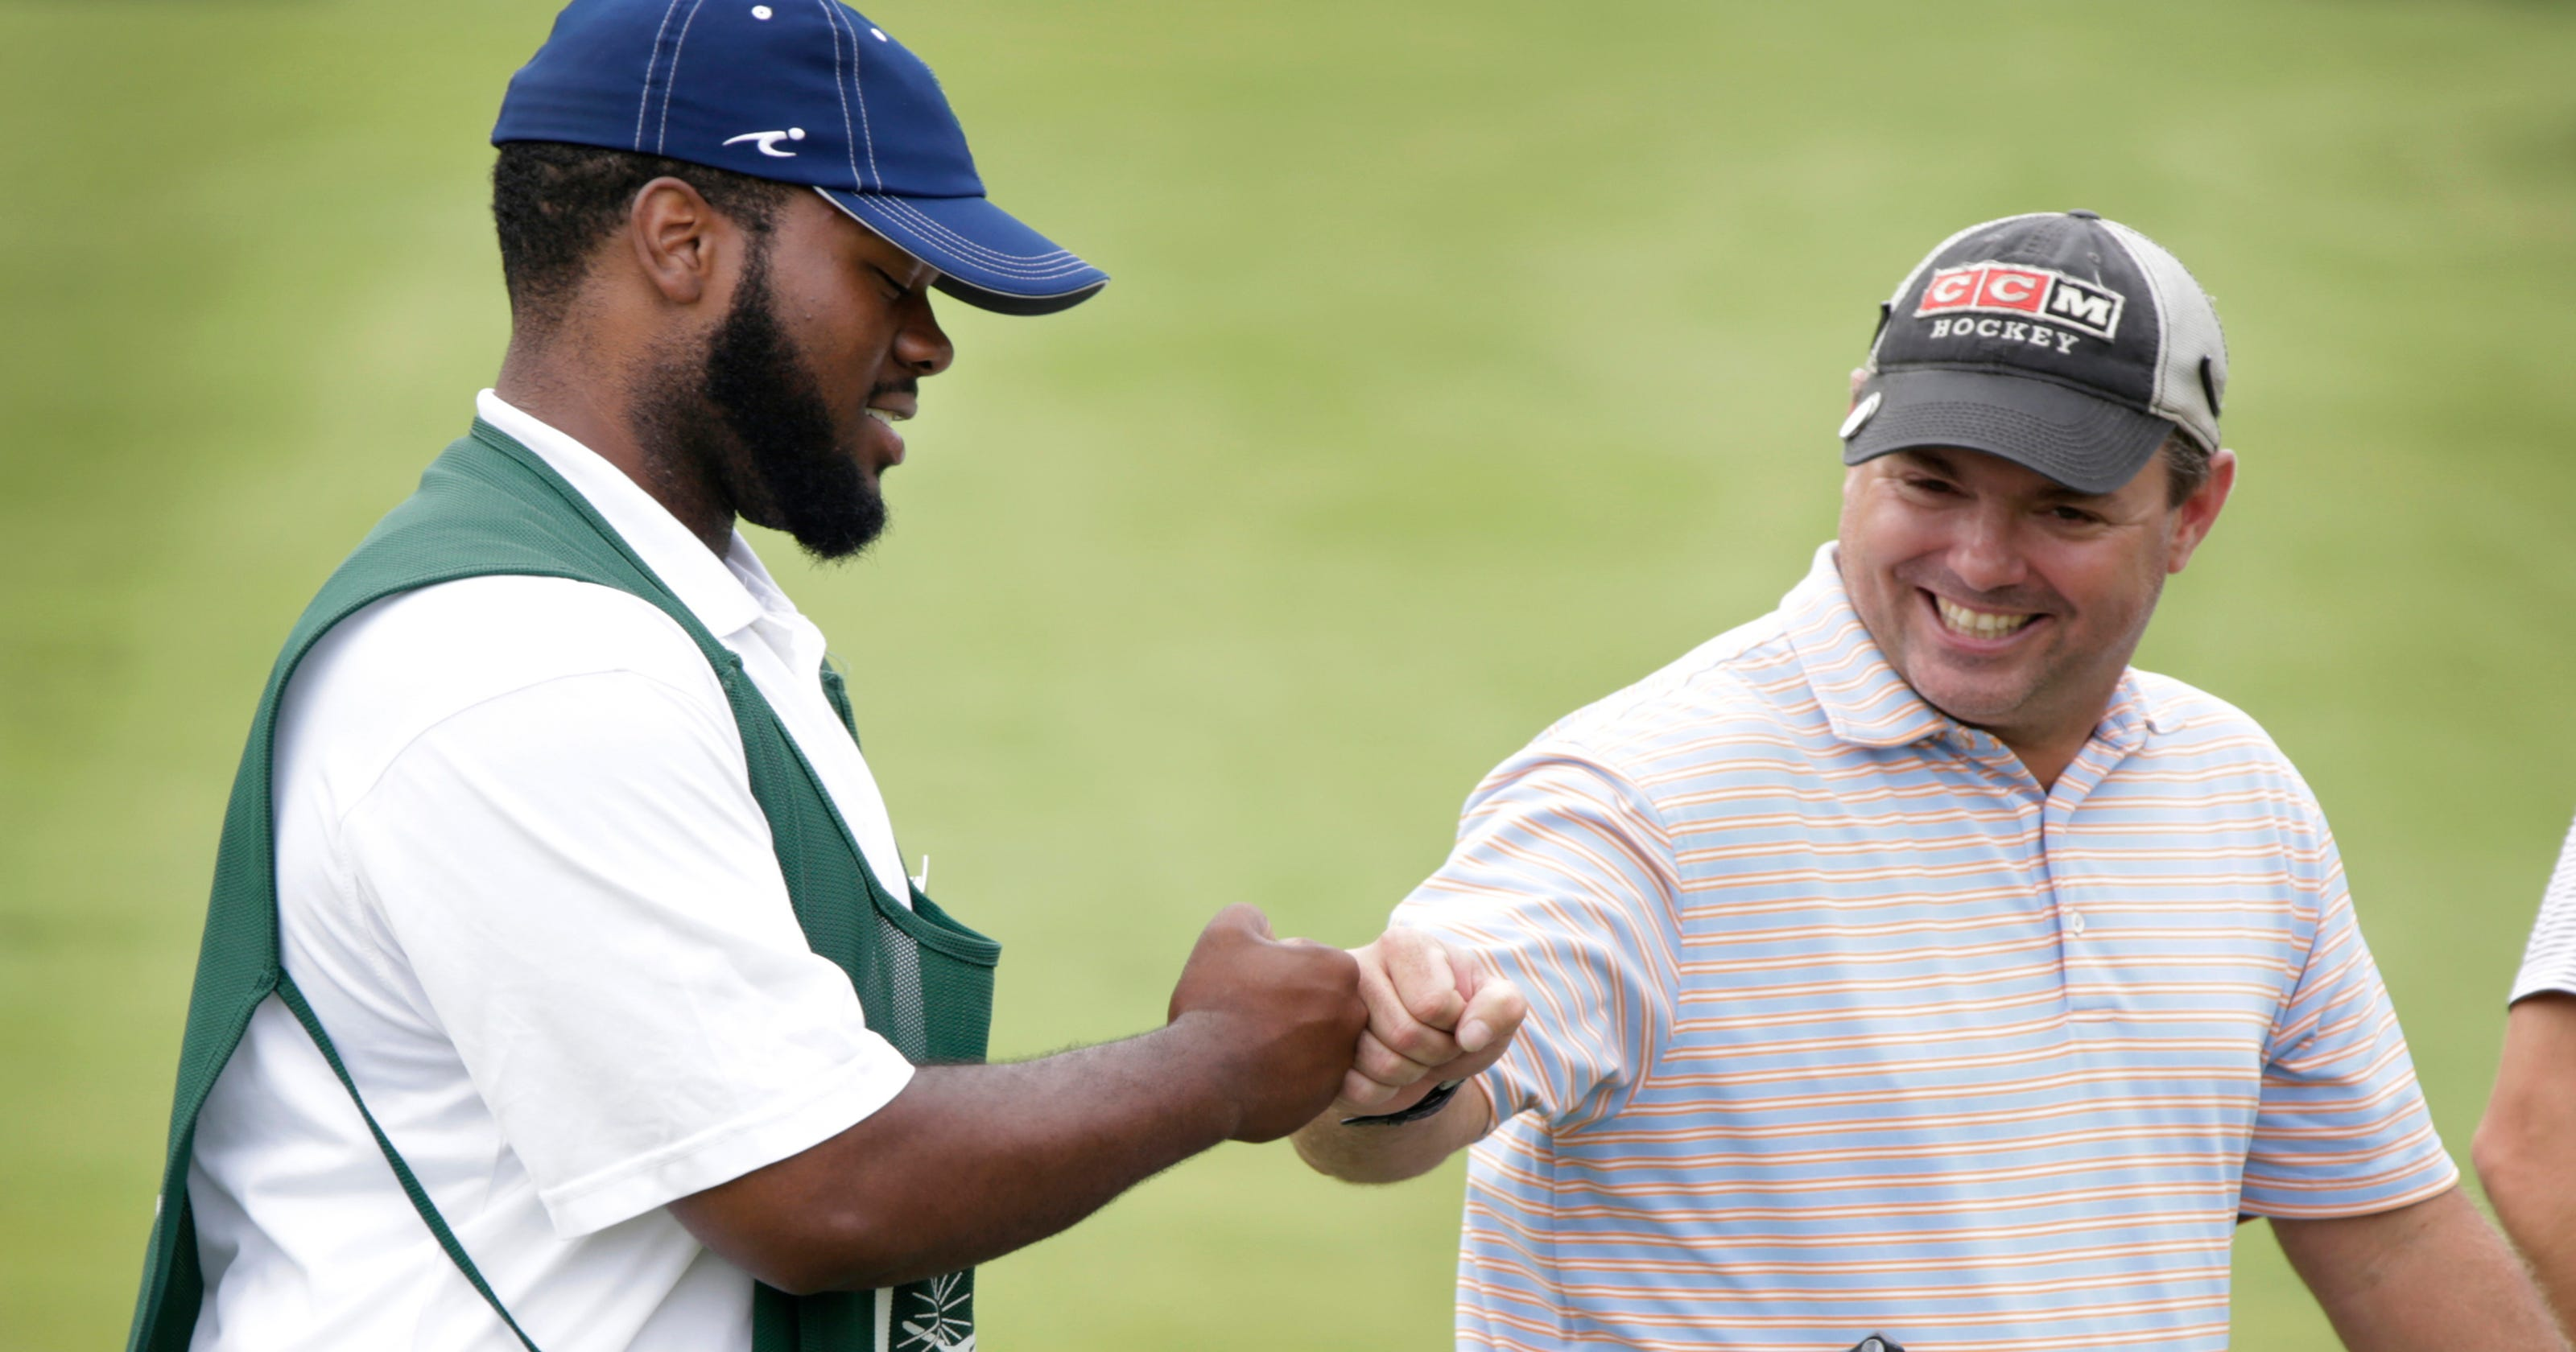 Evans Scholarship: A life-changing opportunity for golf caddies